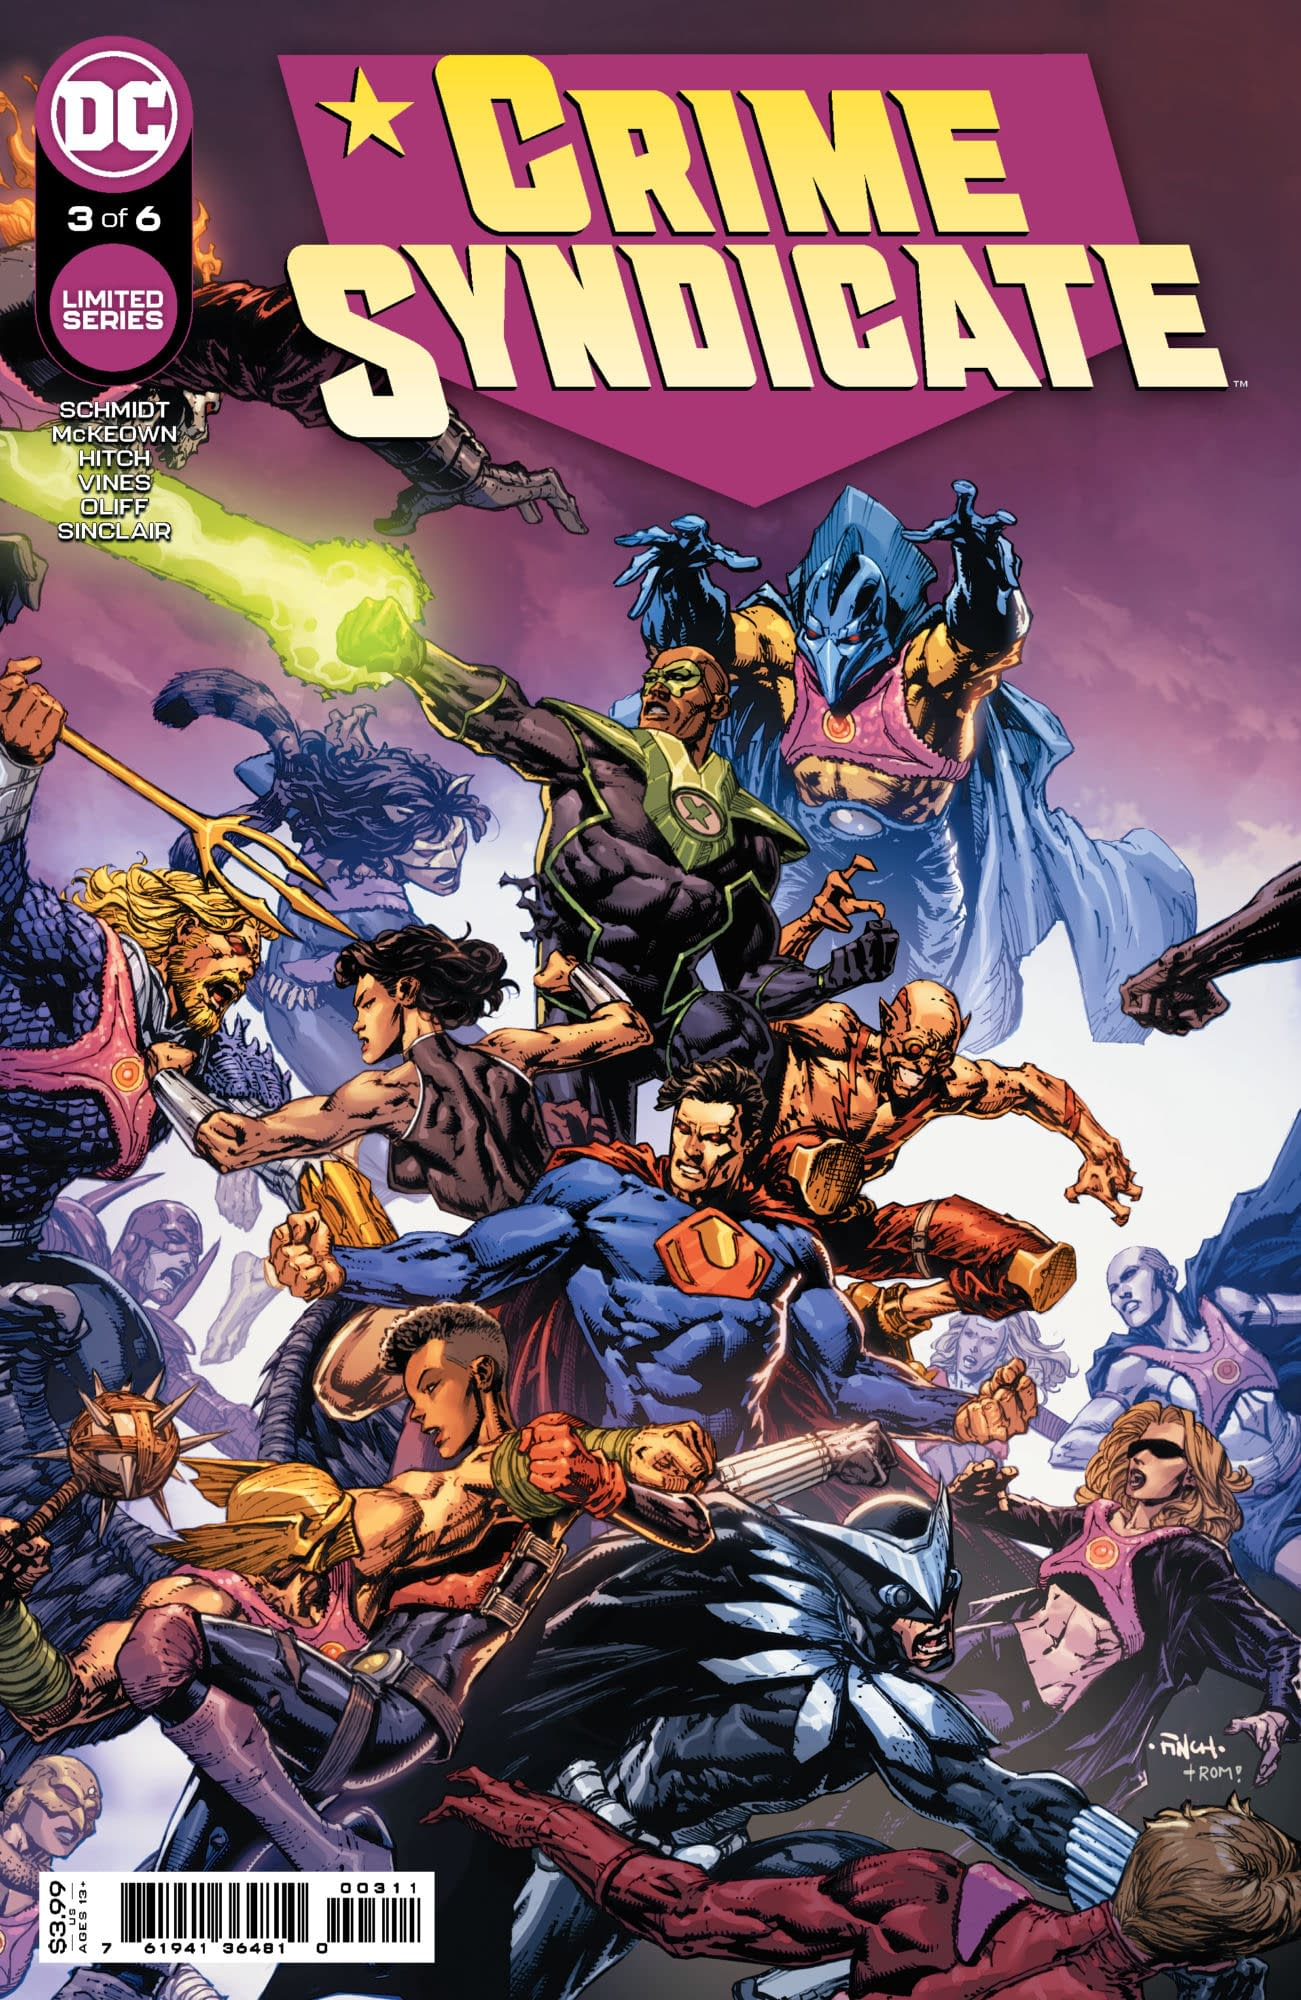 Cover image for CRIME SYNDICATE #3 (OF 6) CVR A DAVID FINCH